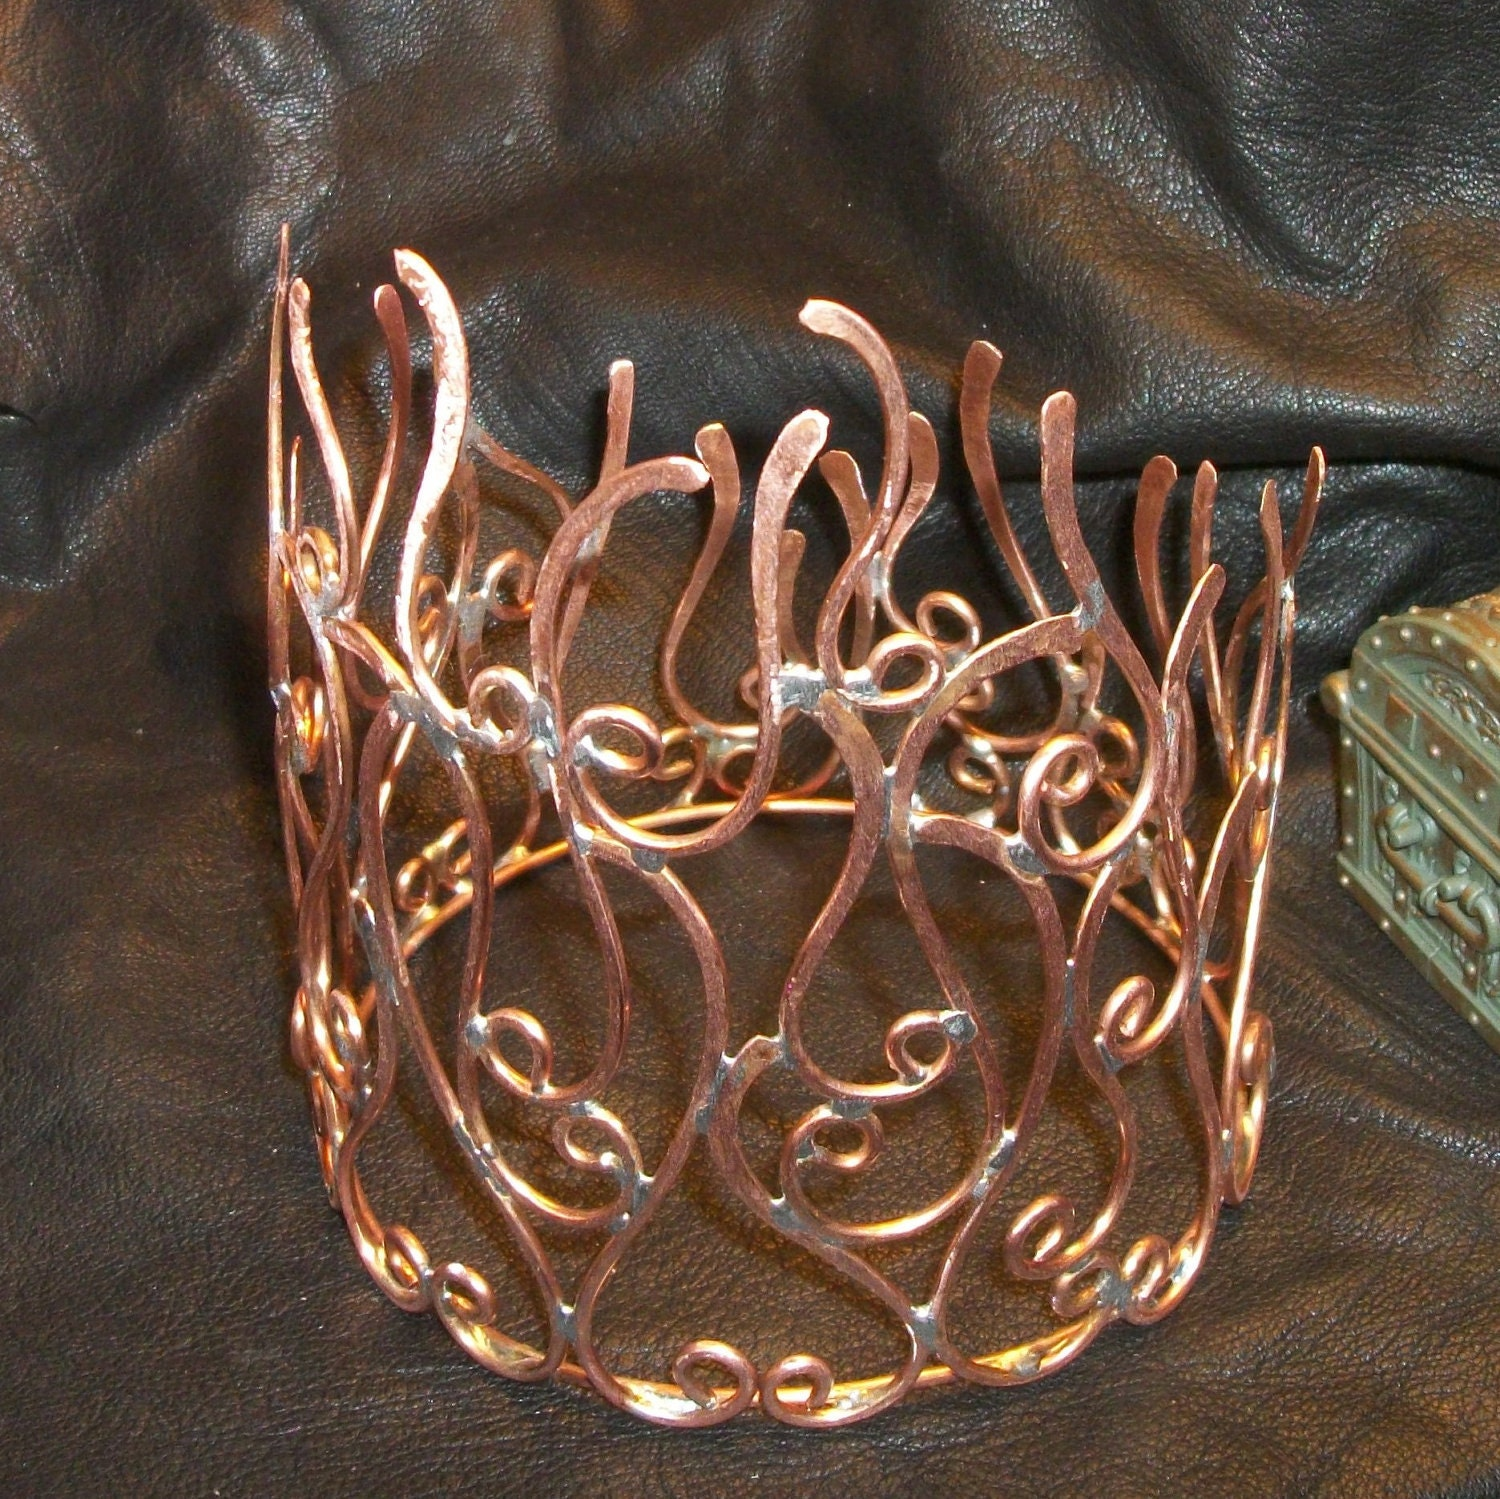 Copper Fire Crown Tiara Handmade by WickedlyWired on Etsy